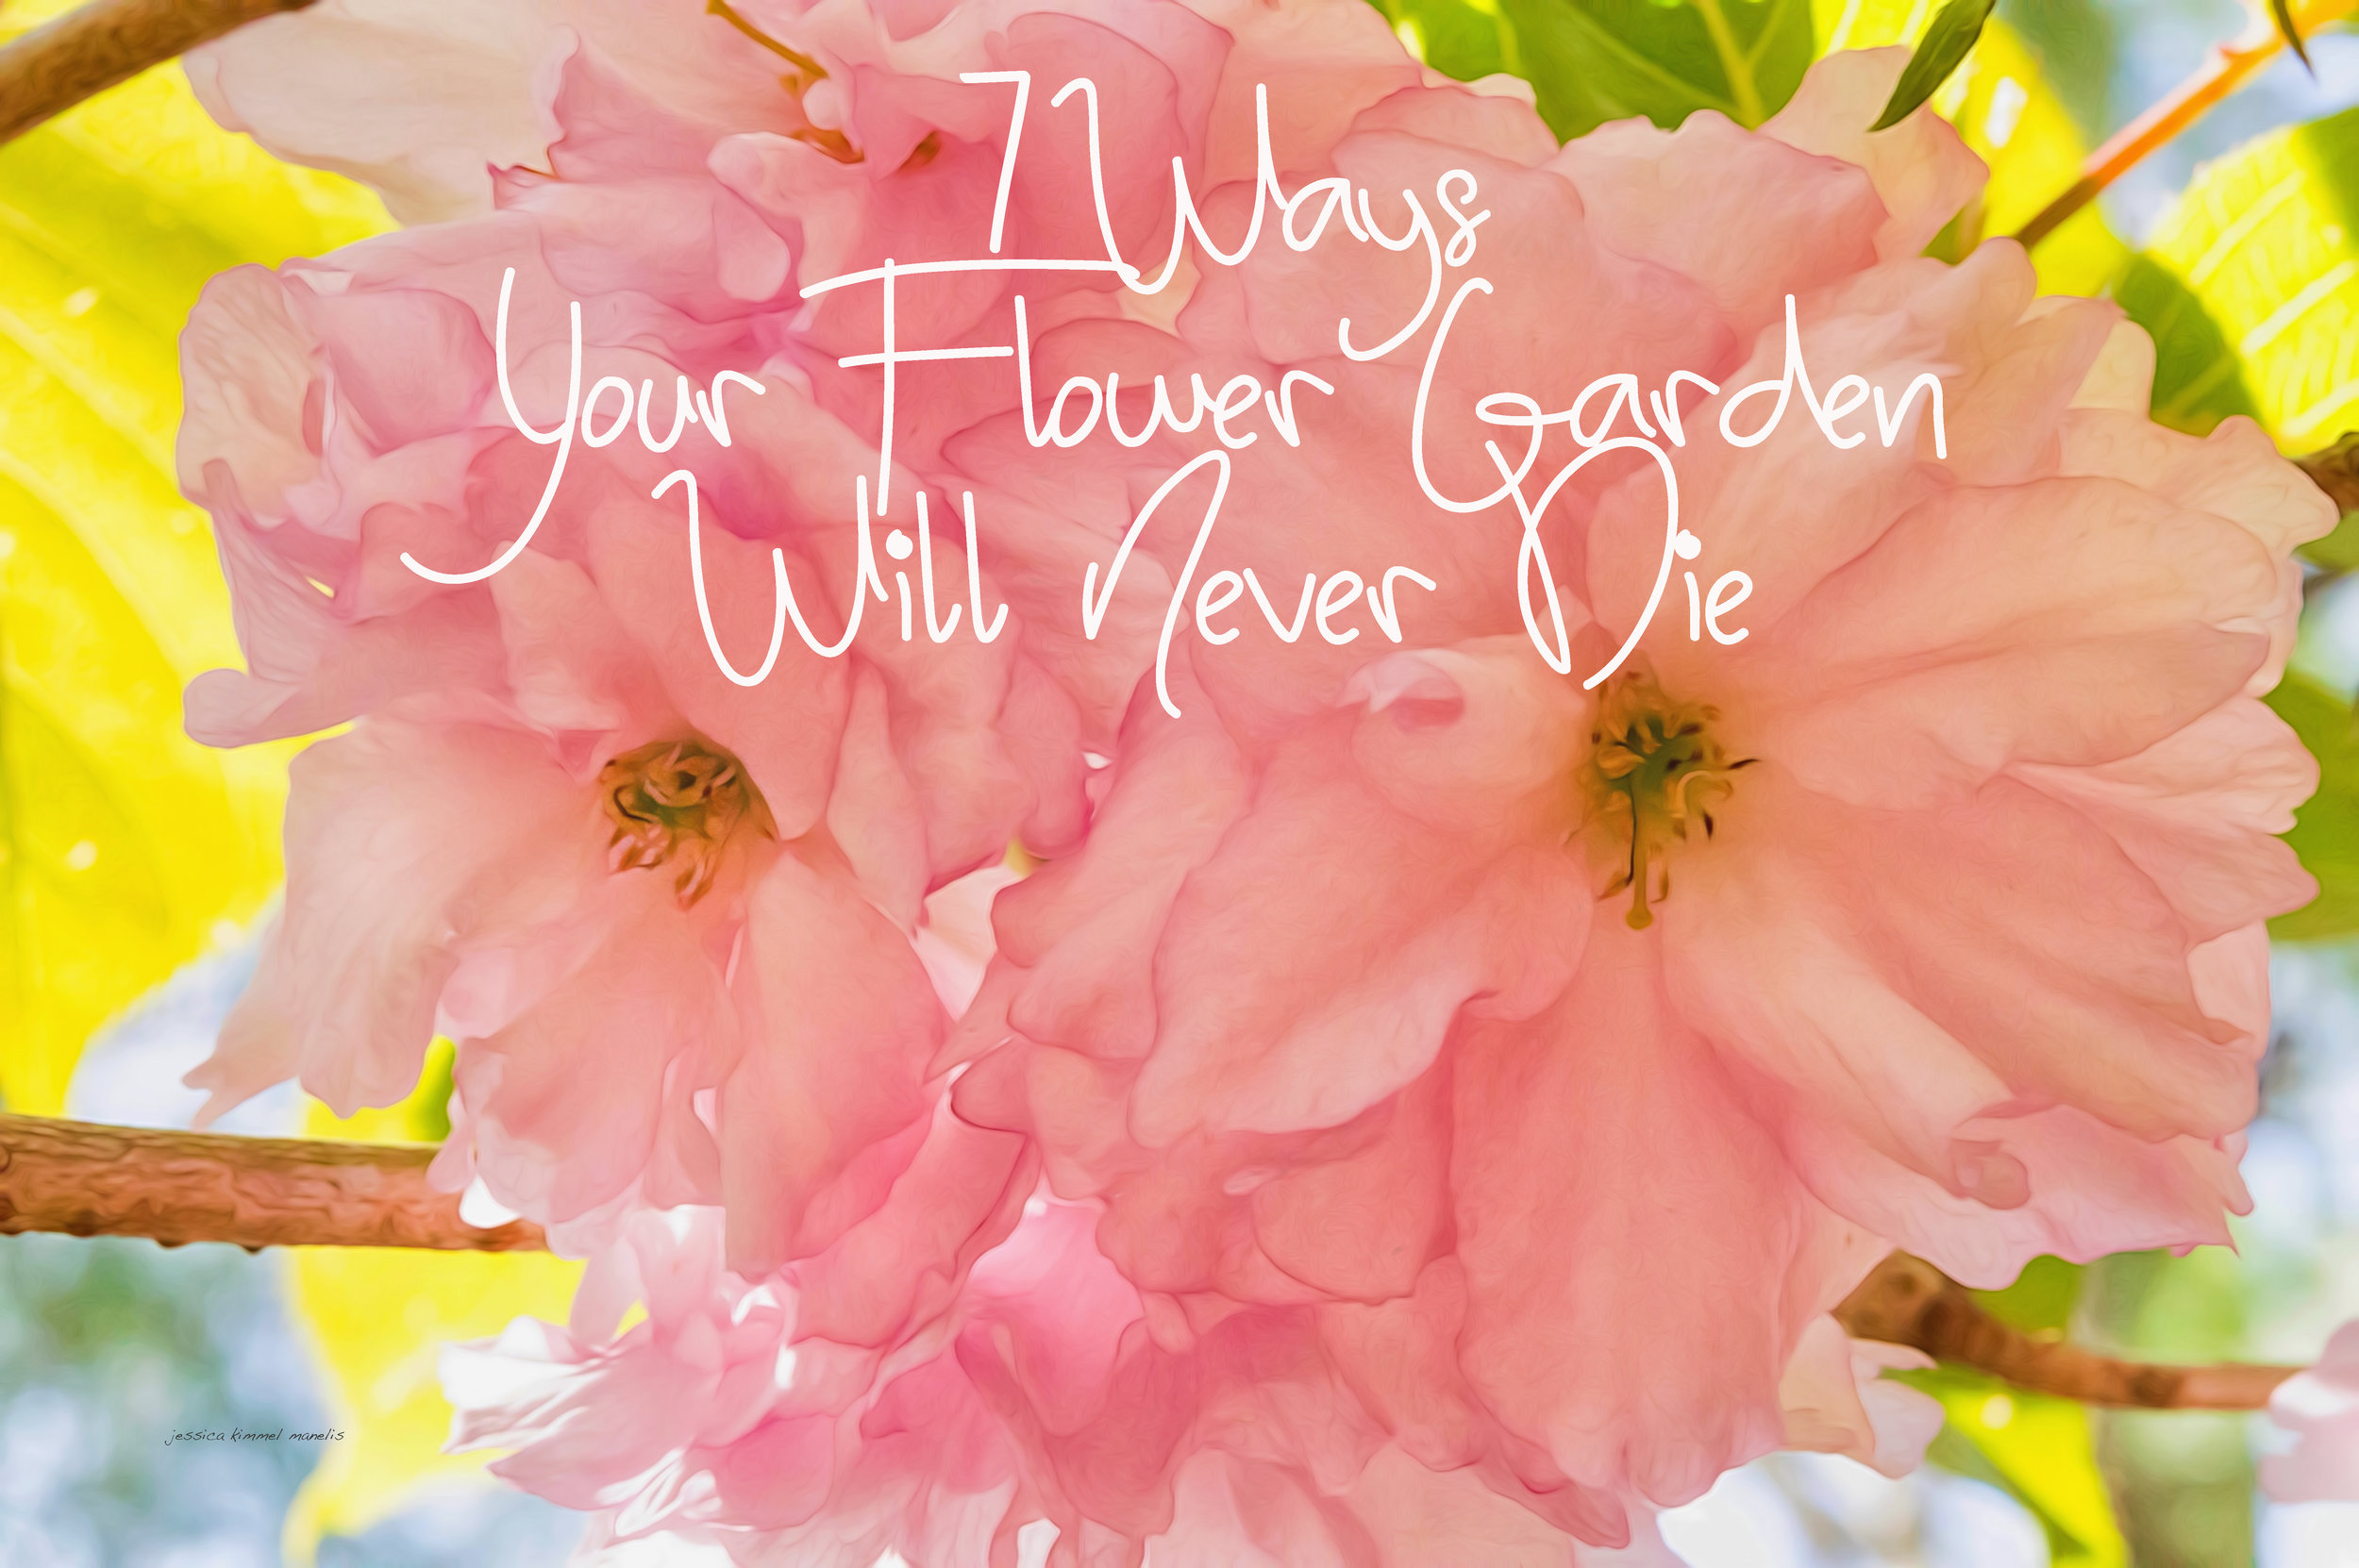 7 Ways your flower garden will never die.jpg